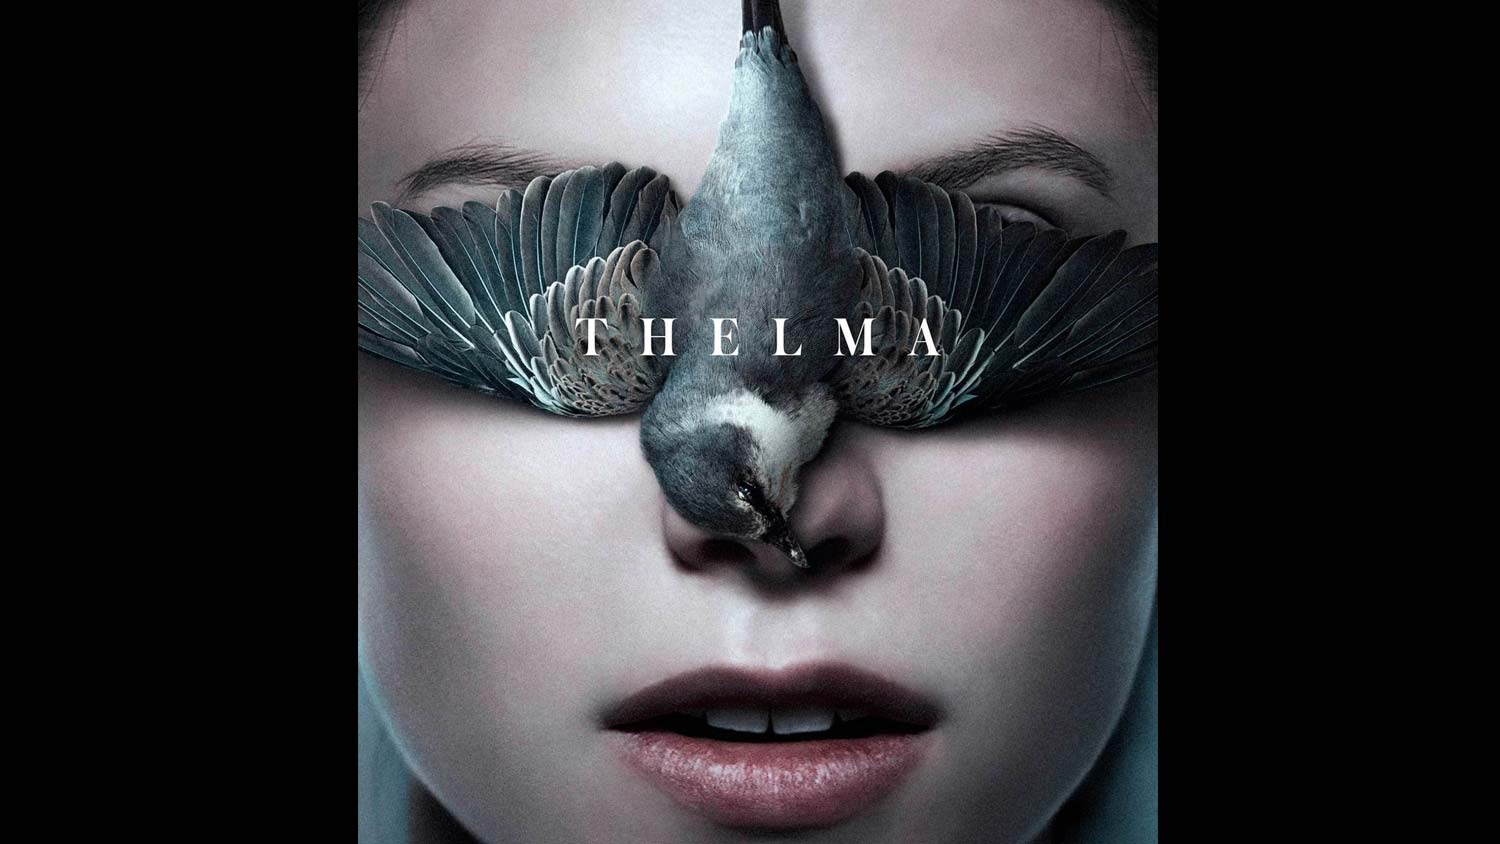 Thelma Blu-Ray Review – Sometimes The Most Terrifying Discovery, Is Who You Really Are - OC Movie Reviews - Movie Reviews, Movie News, Documentary Reviews, Short Films, Short Film Reviews, Trailers, Movie Trailers, Interviews, film reviews, film news, hollywood, indie films, documentaries